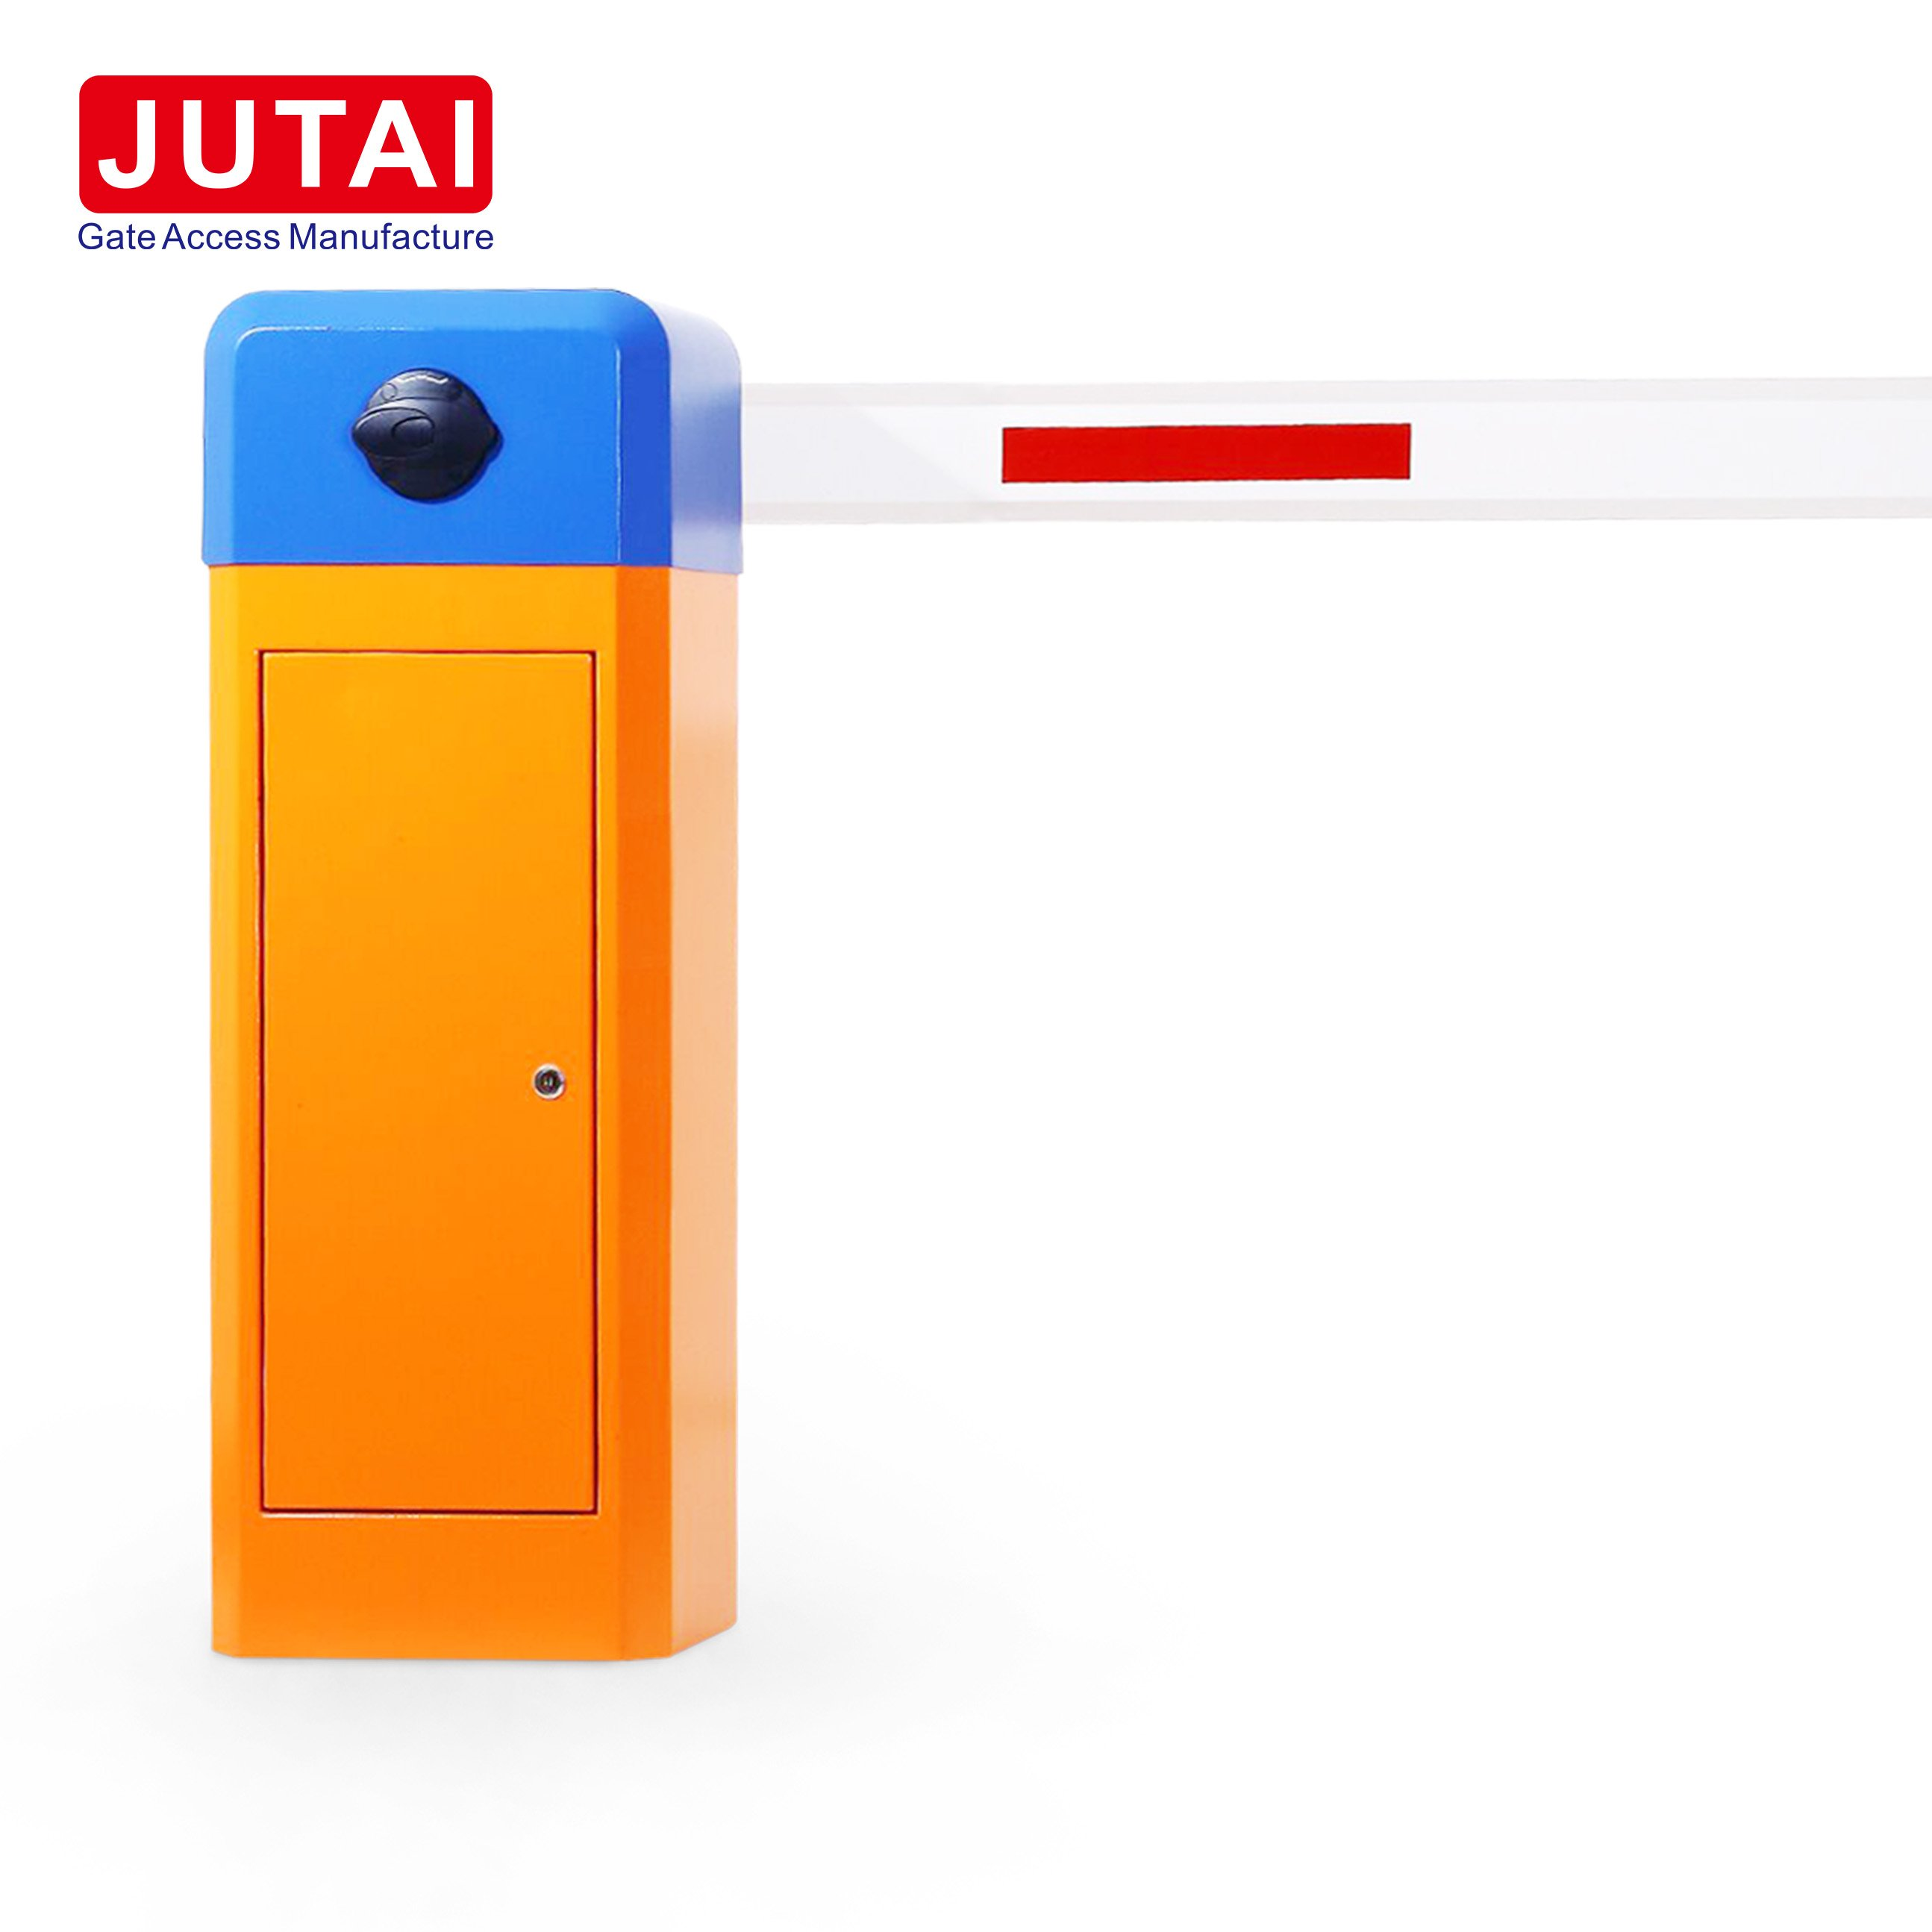 JUTAI Intelligent Barrier Gate Access Used Loop Detector to Automatic Close